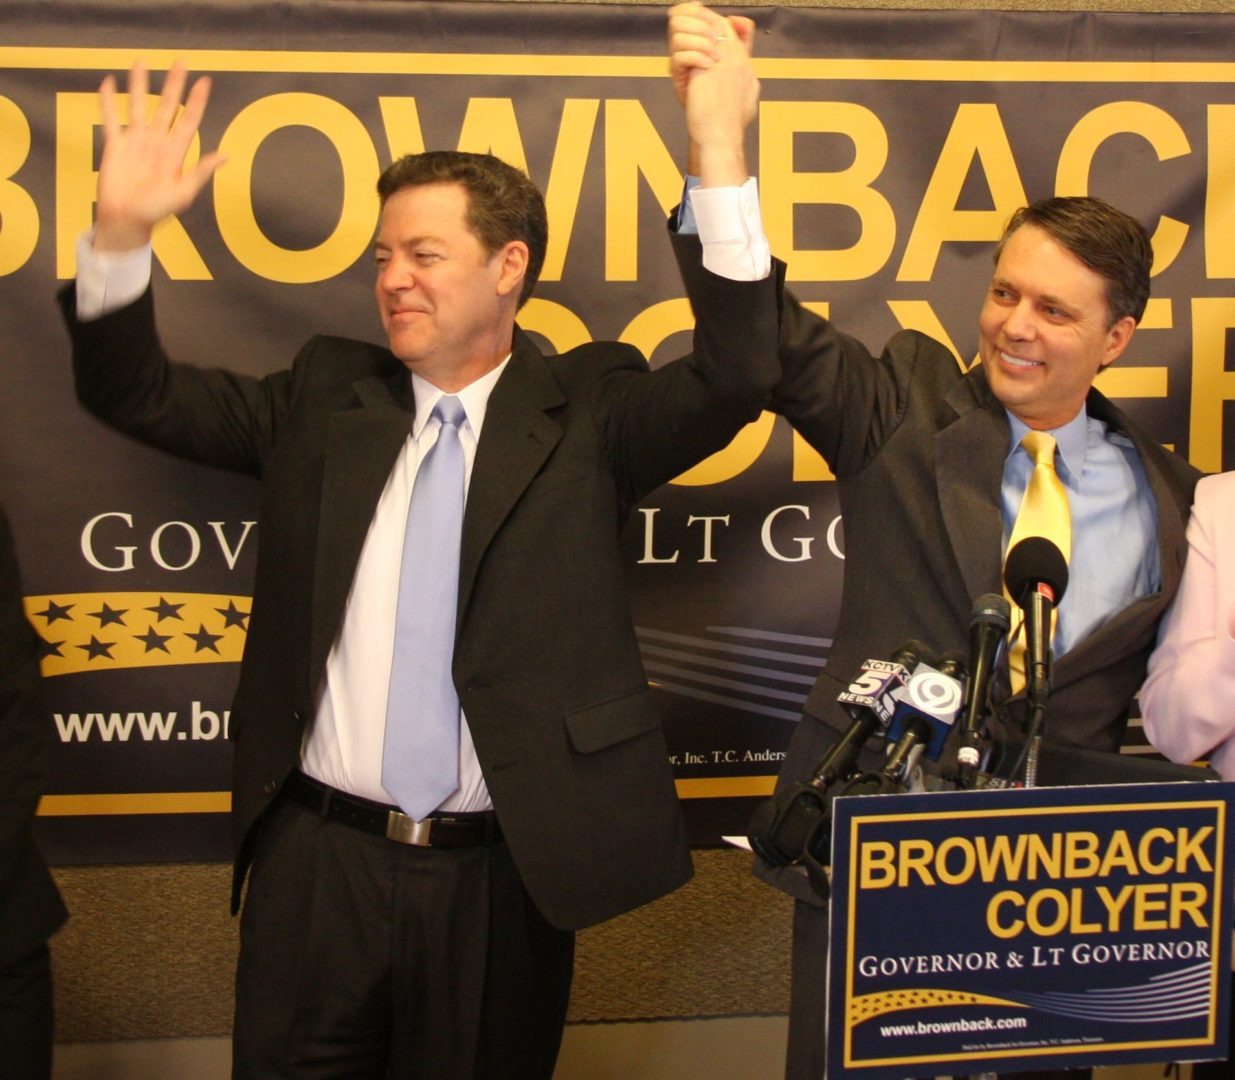 Brownback selects Colyer for running mate in governor's bid